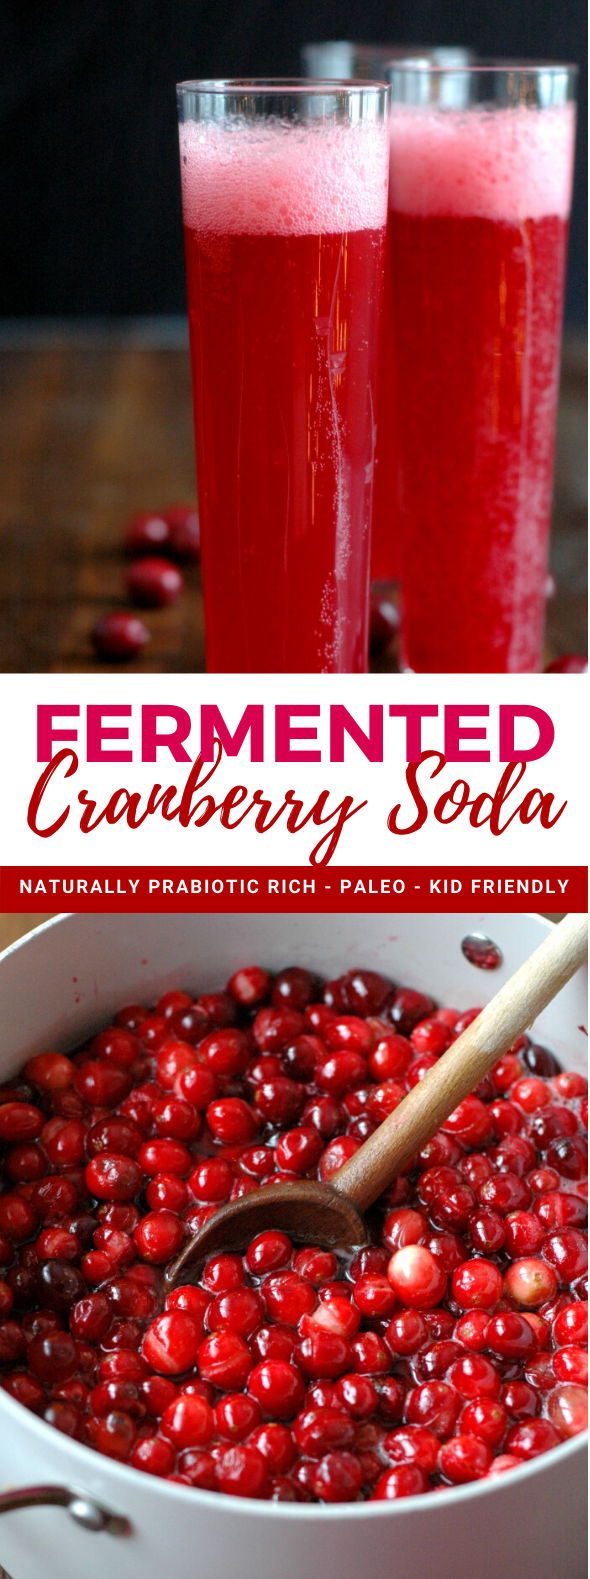 Fermented Cranberry Soda #drinks #cocktails